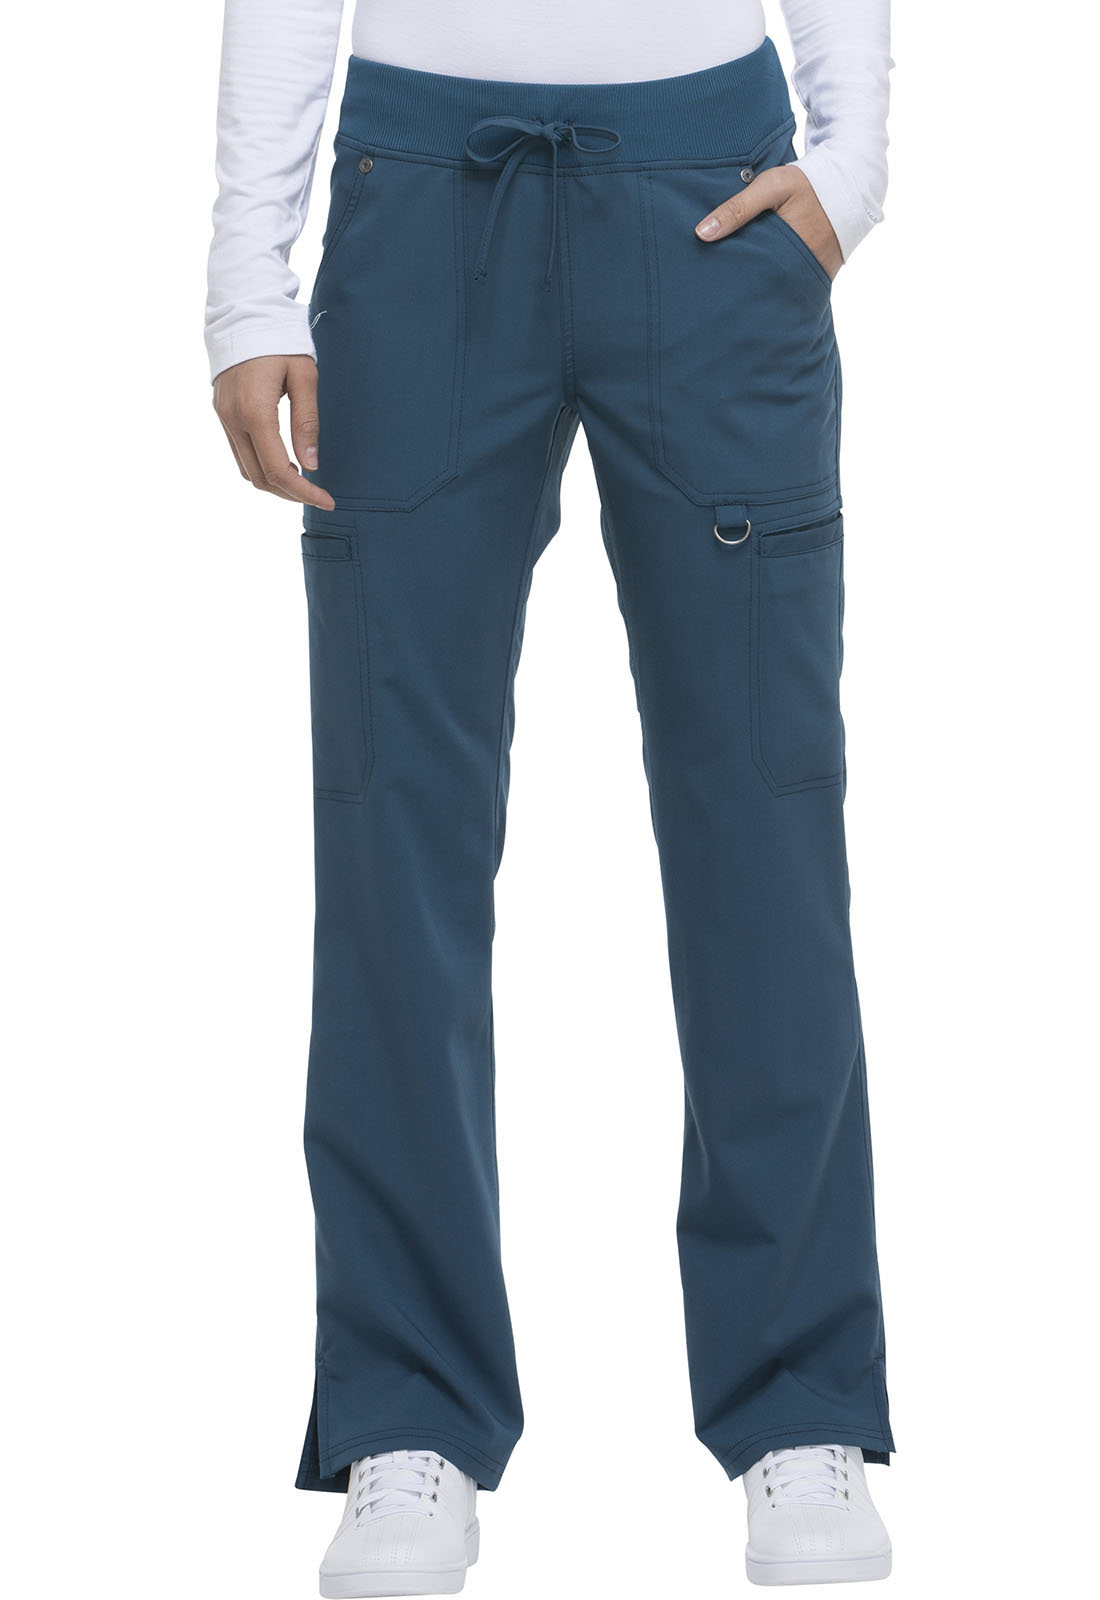 fe868192044 Dickies Xtreme Stretch Mid Rise Rib Knit Waistband Pant in Caribbean ...